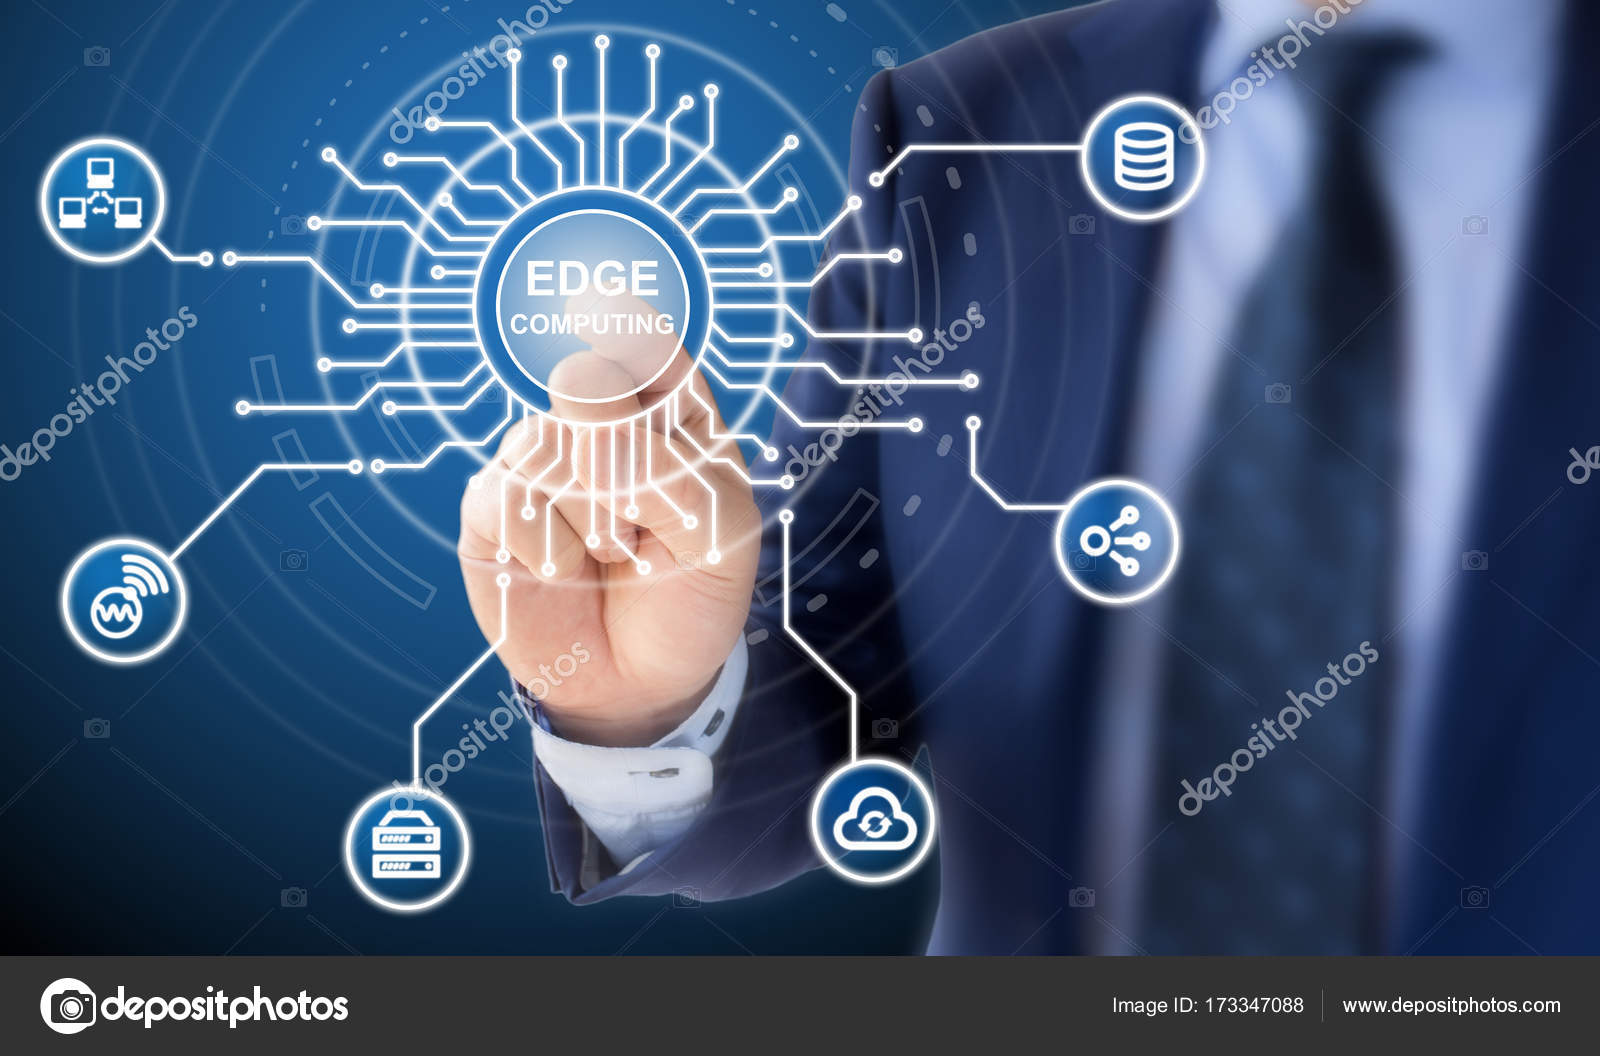 edge computing circuit diagram explained by it expert — stock photo